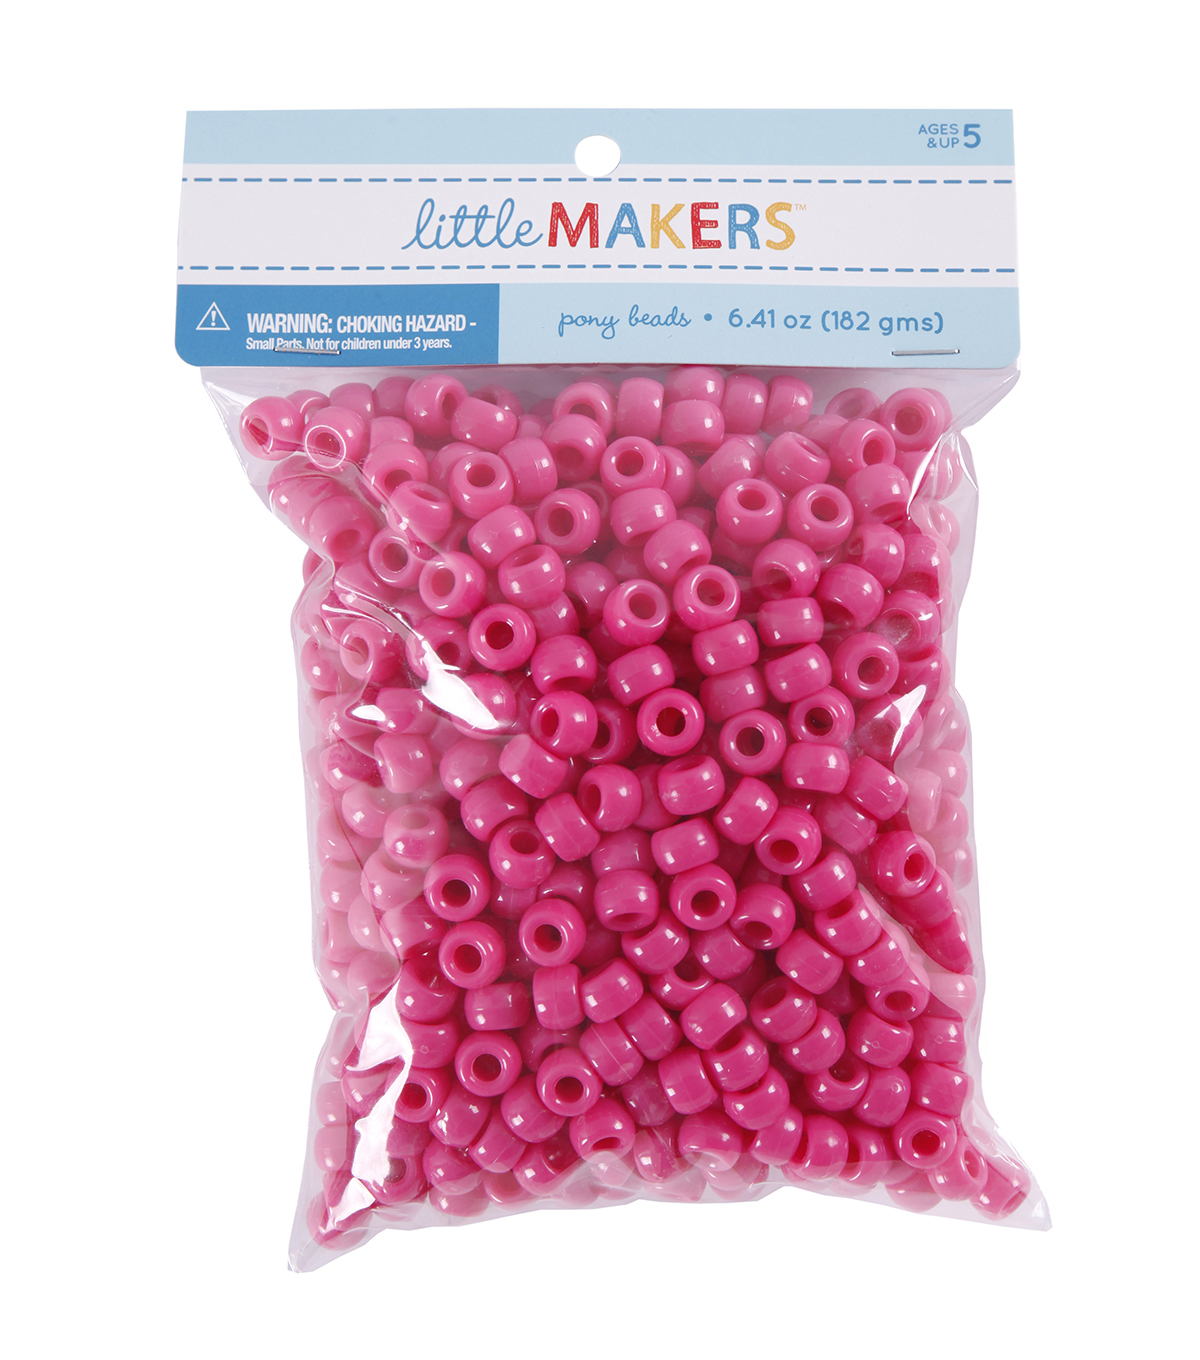 Little Makers Pony Beads Raspberry